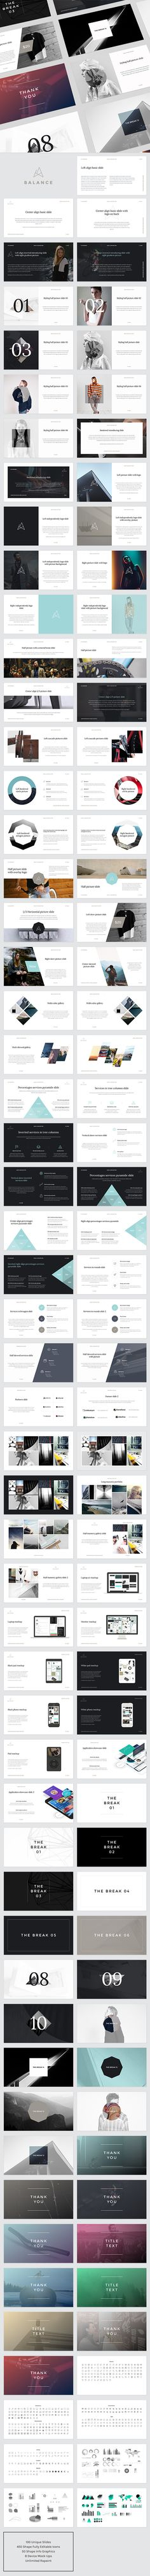 BALANCE PowerPoint Presentation Template #design #slides Download: http://graphicriver.net/item/balance-powerpoint-presentation/14417275?ref=ksioks